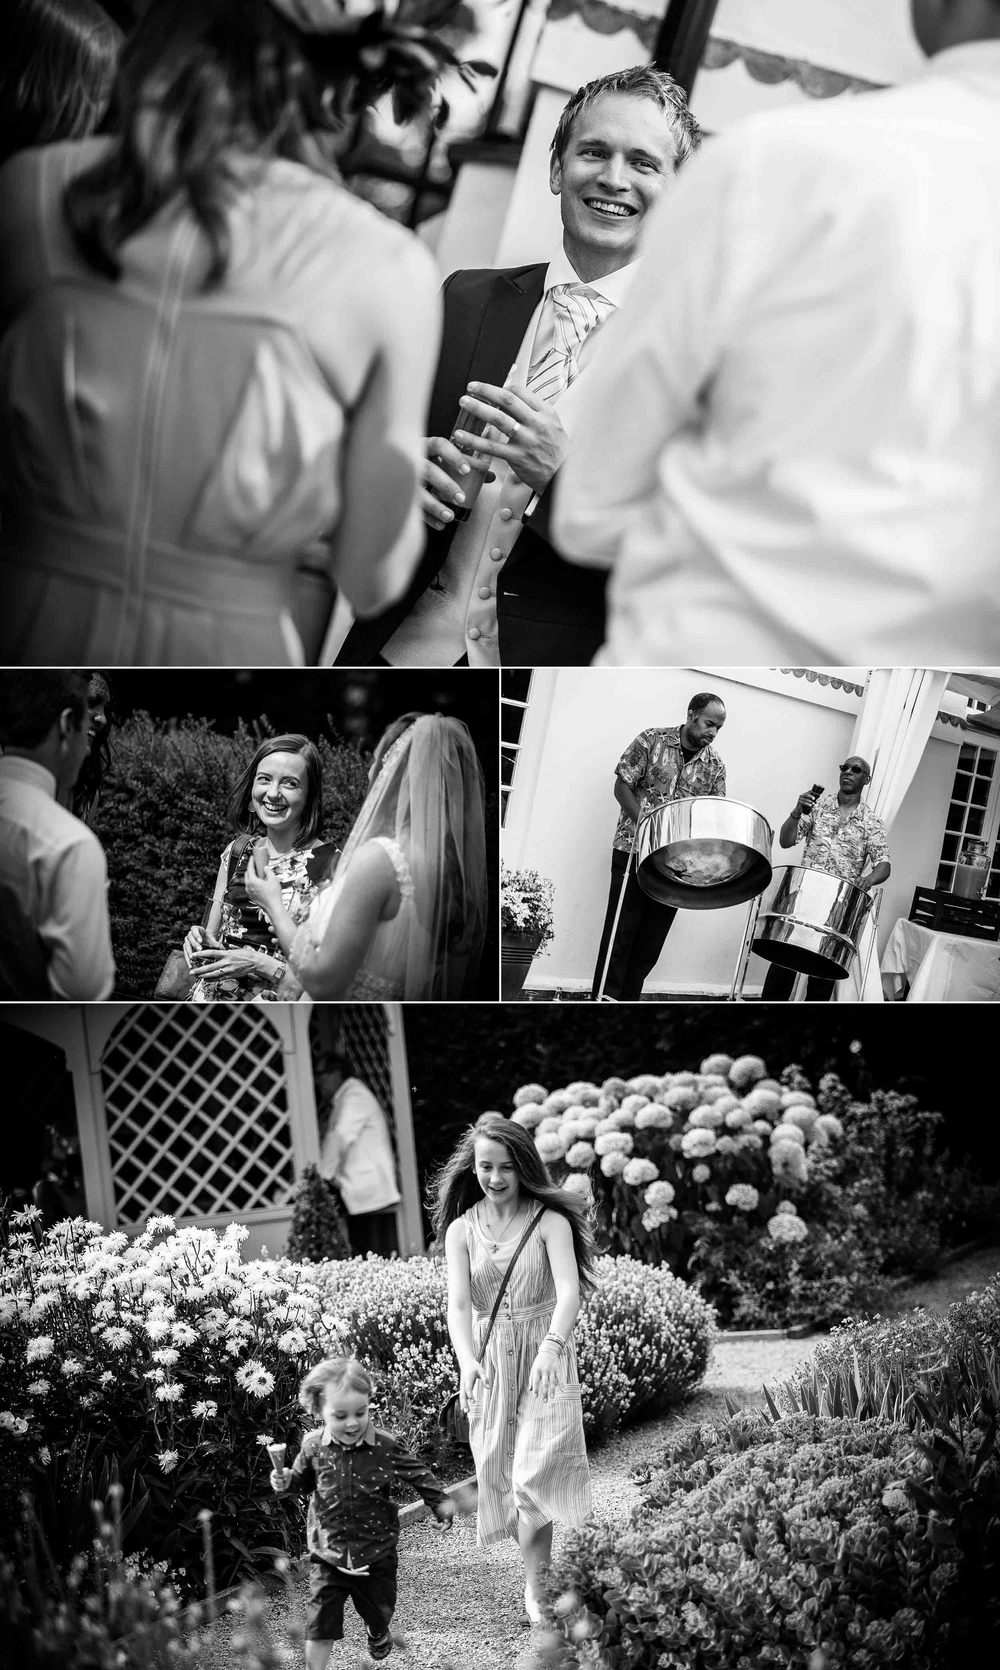 Marks-Hall-Wedding-Photographer-38.jpg